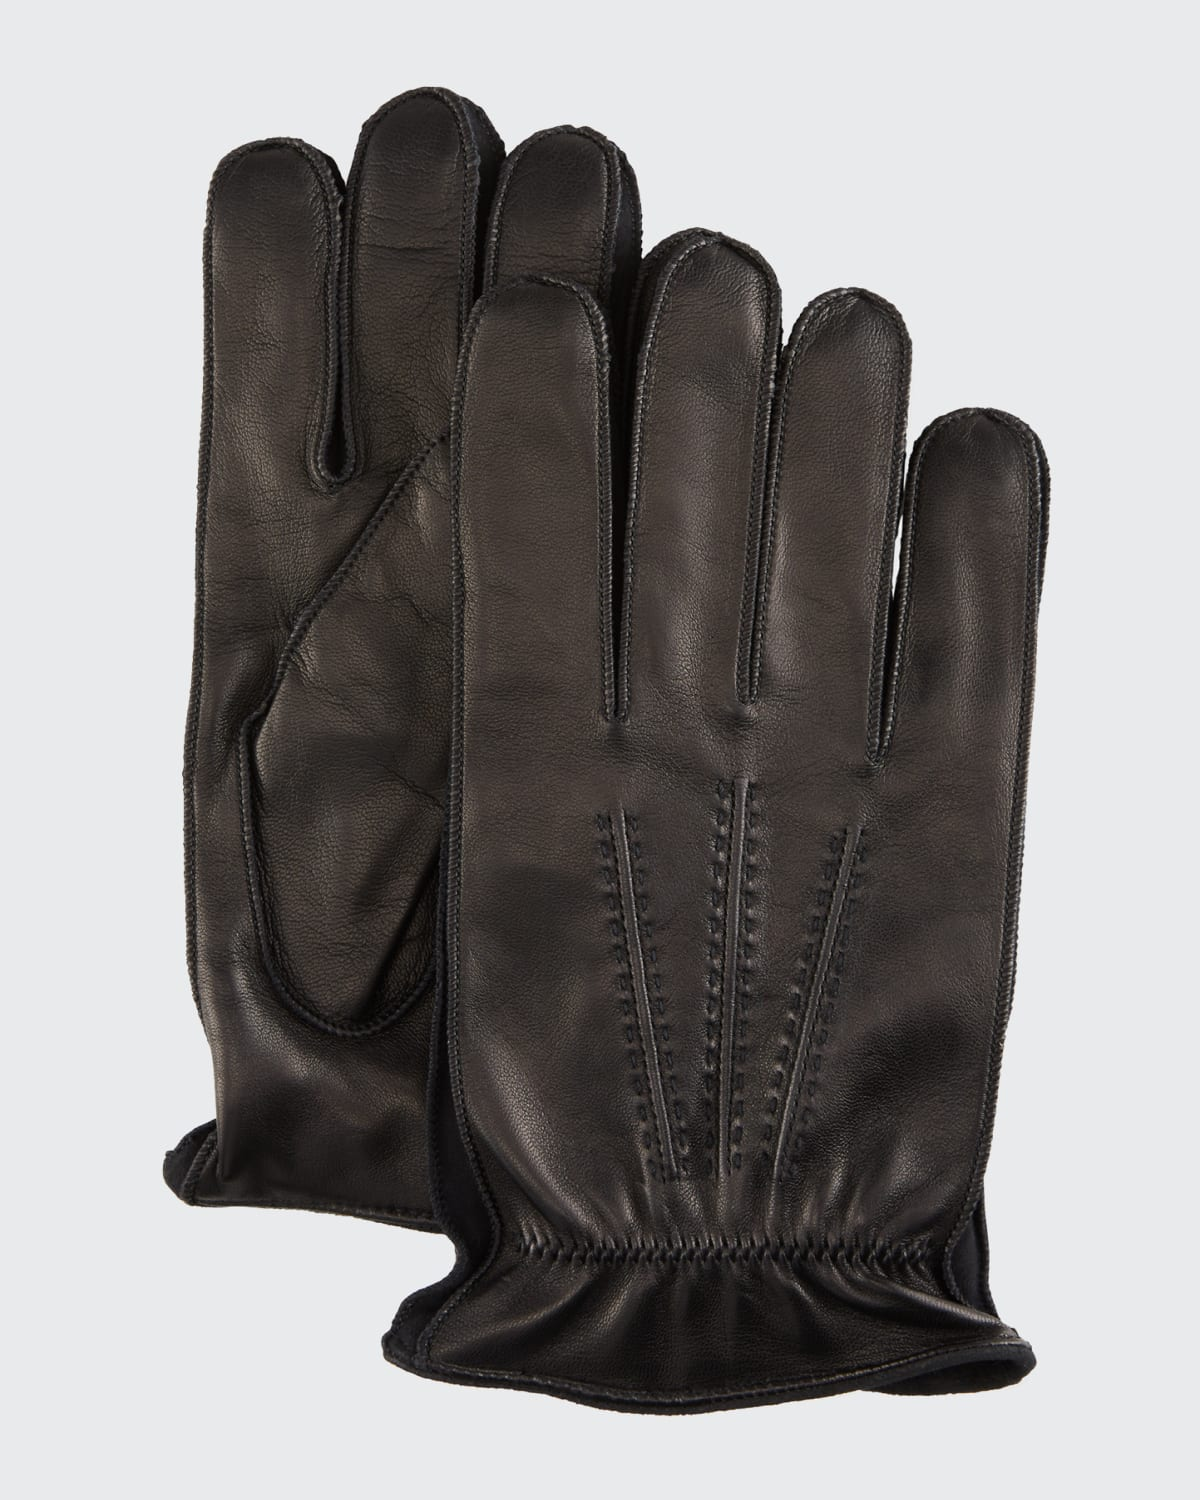 Men's Leather/Suede Gloves with Cashmere Lining